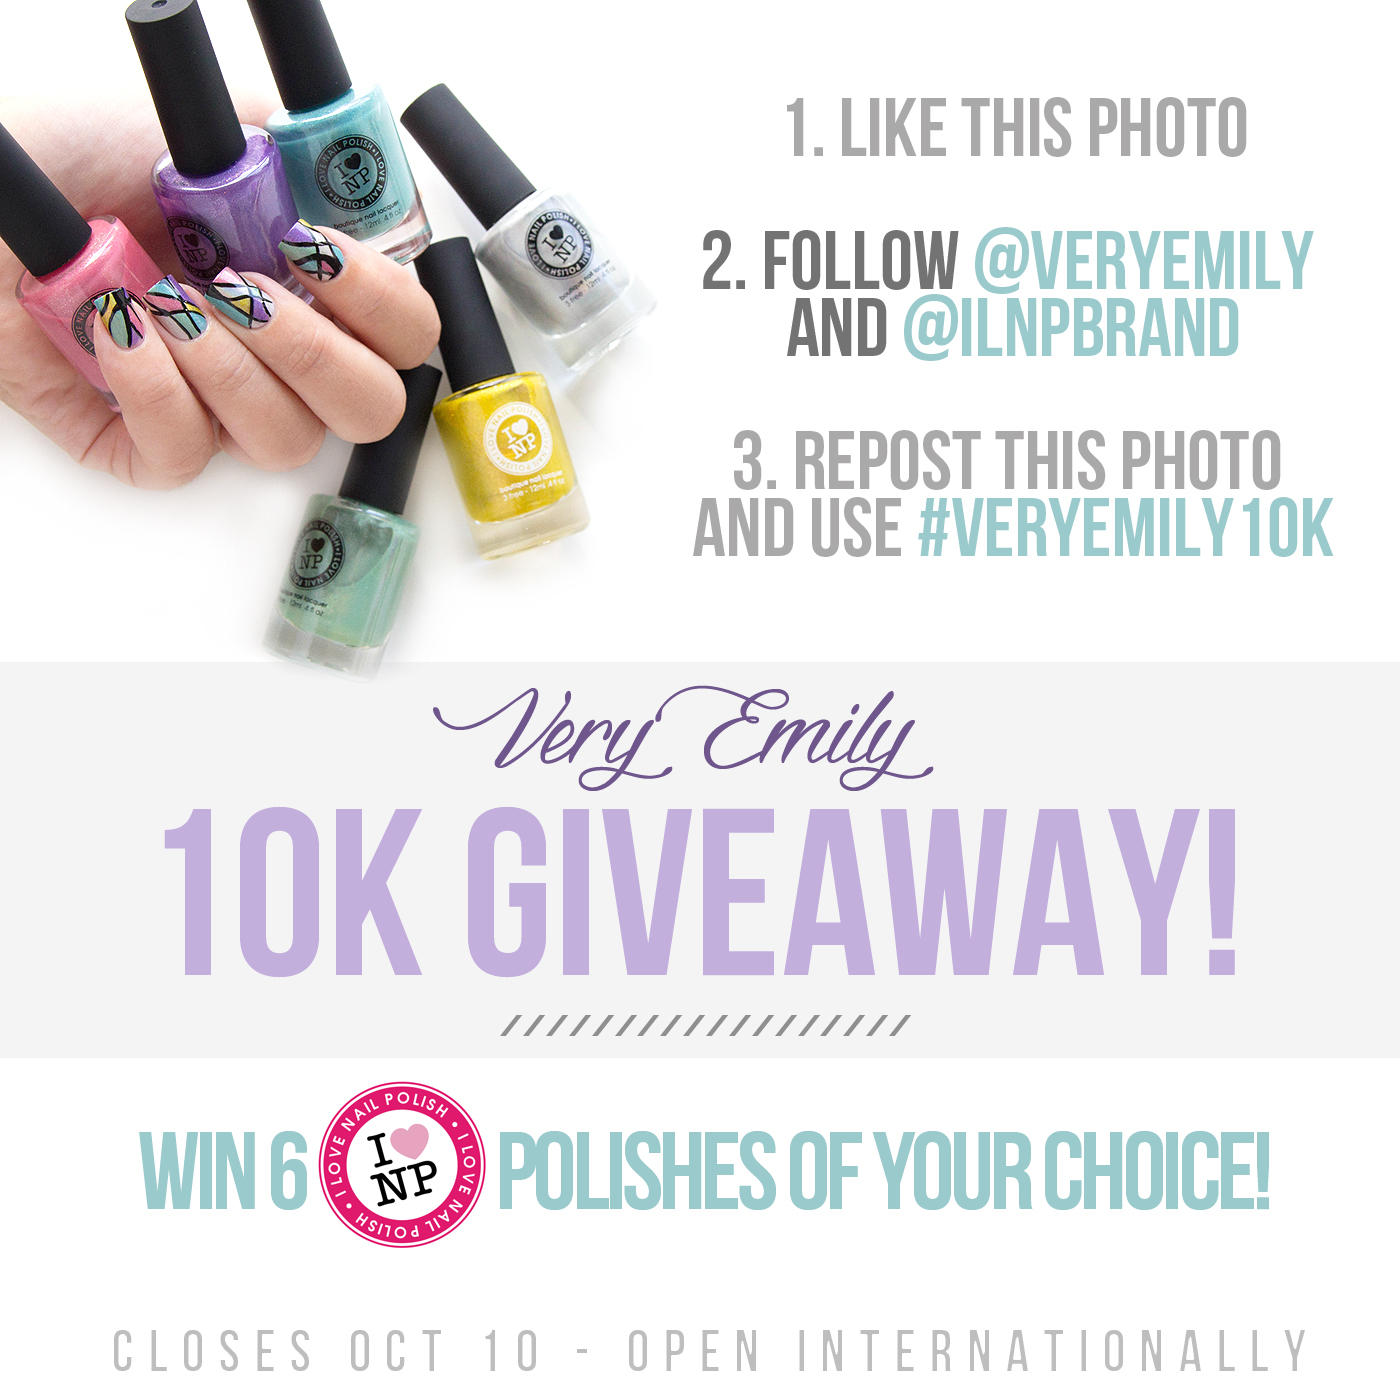 Giveaway on instagram rules